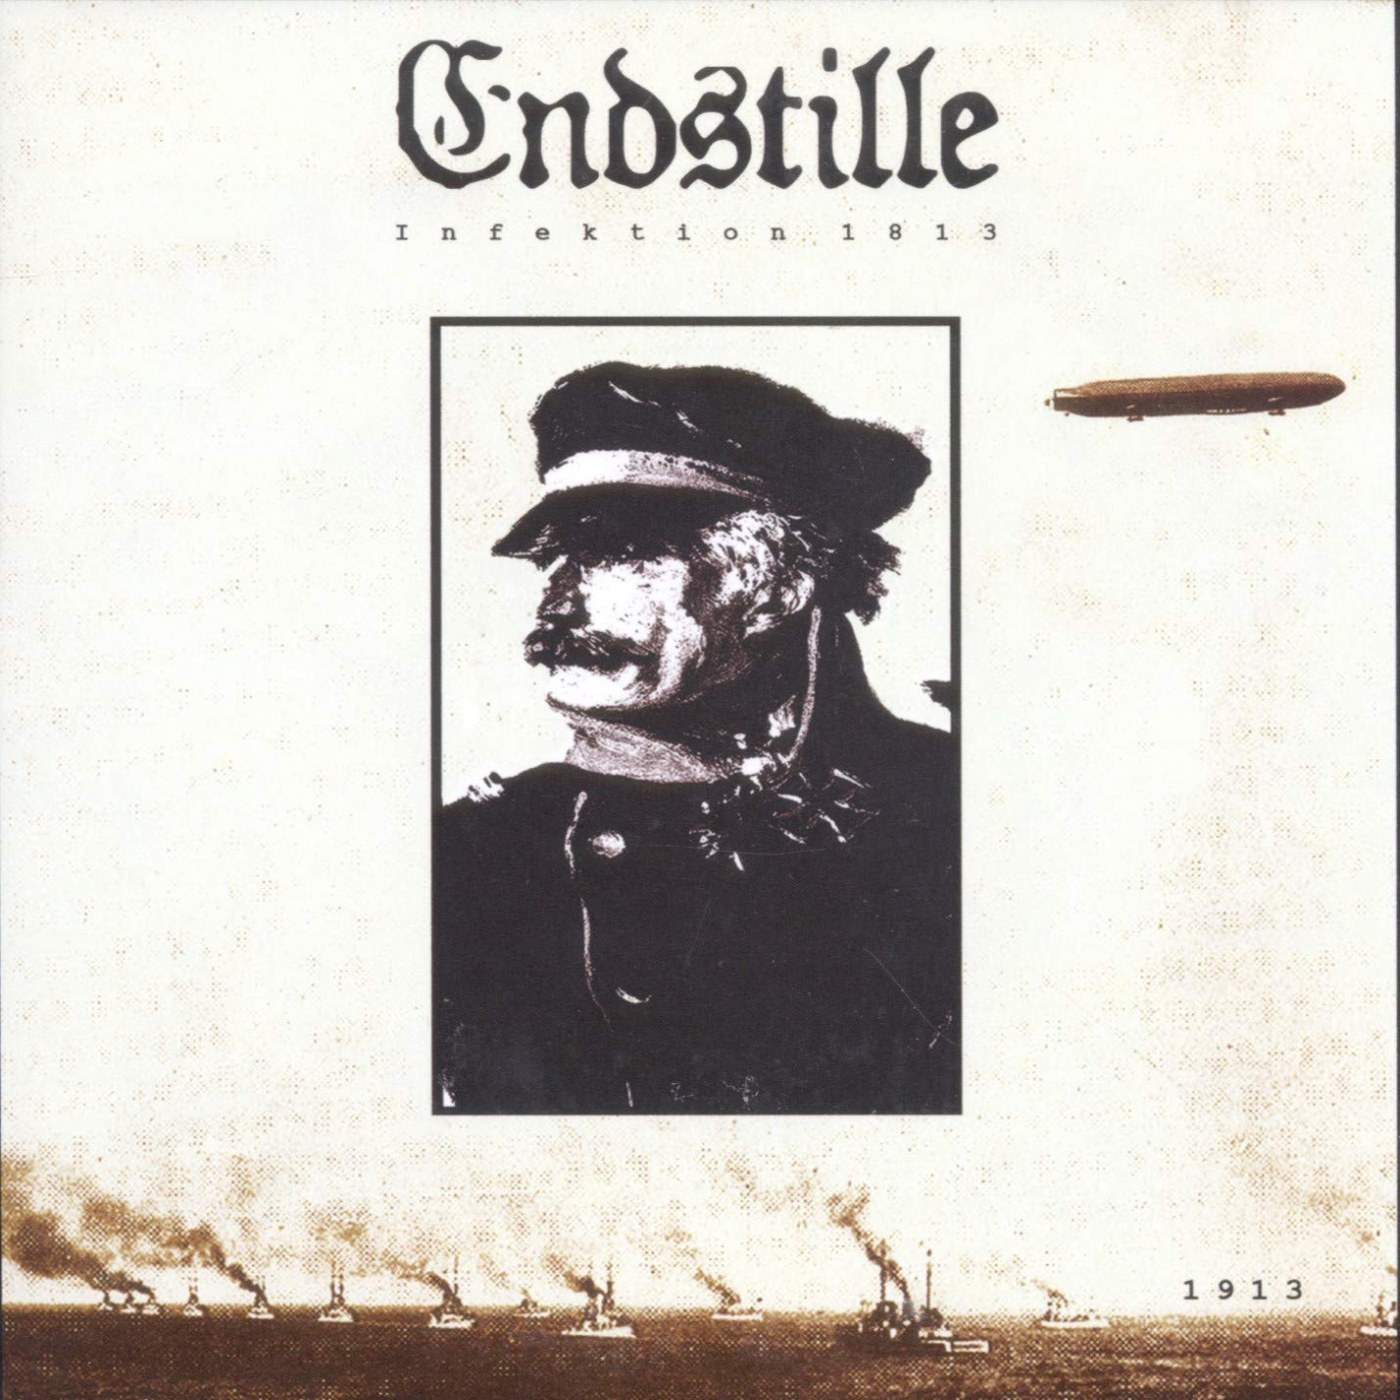 Review for Endstille - Infektion 1813